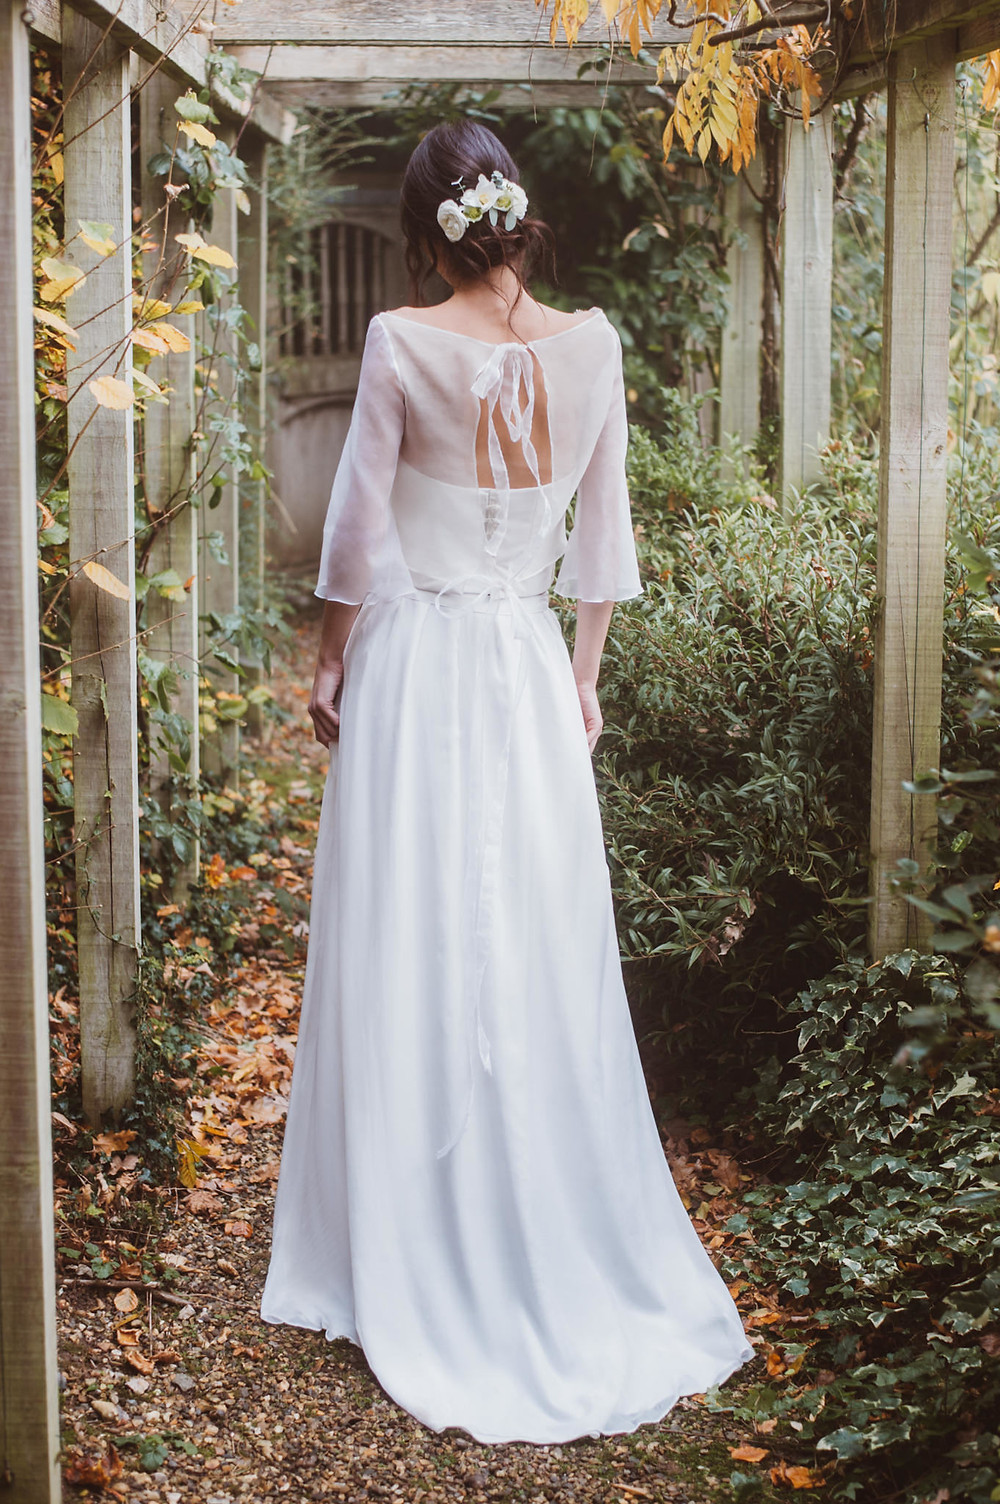 Bohemian wedding dress Jessica Turner Designs